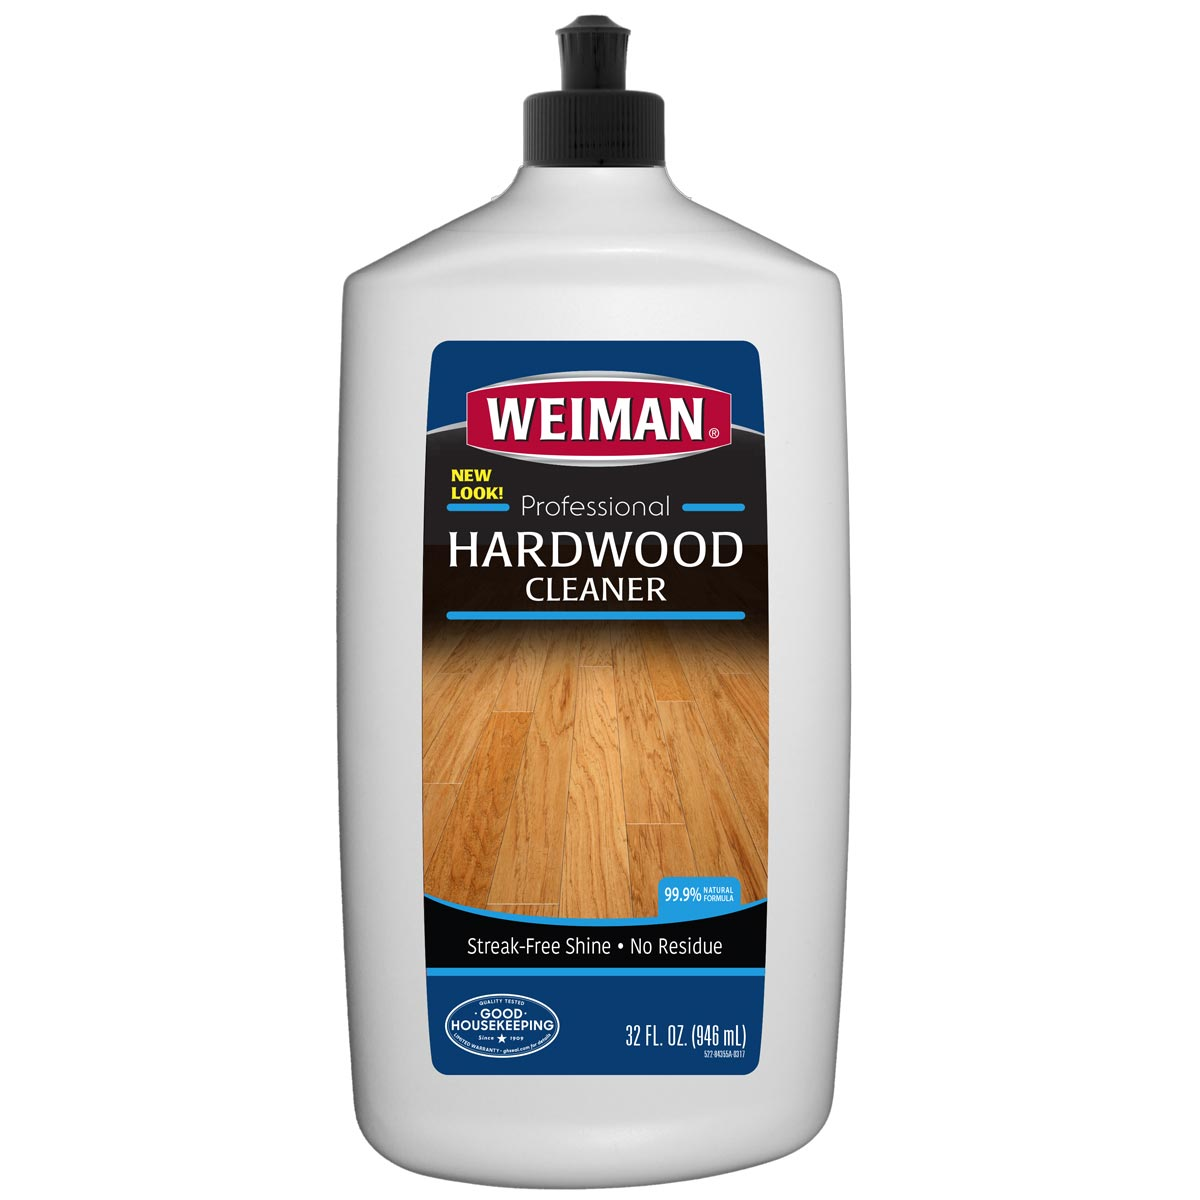 https://googone.com/media/catalog/product/w/e/weiman-hardwood-floor-cleaner_front_1.jpg